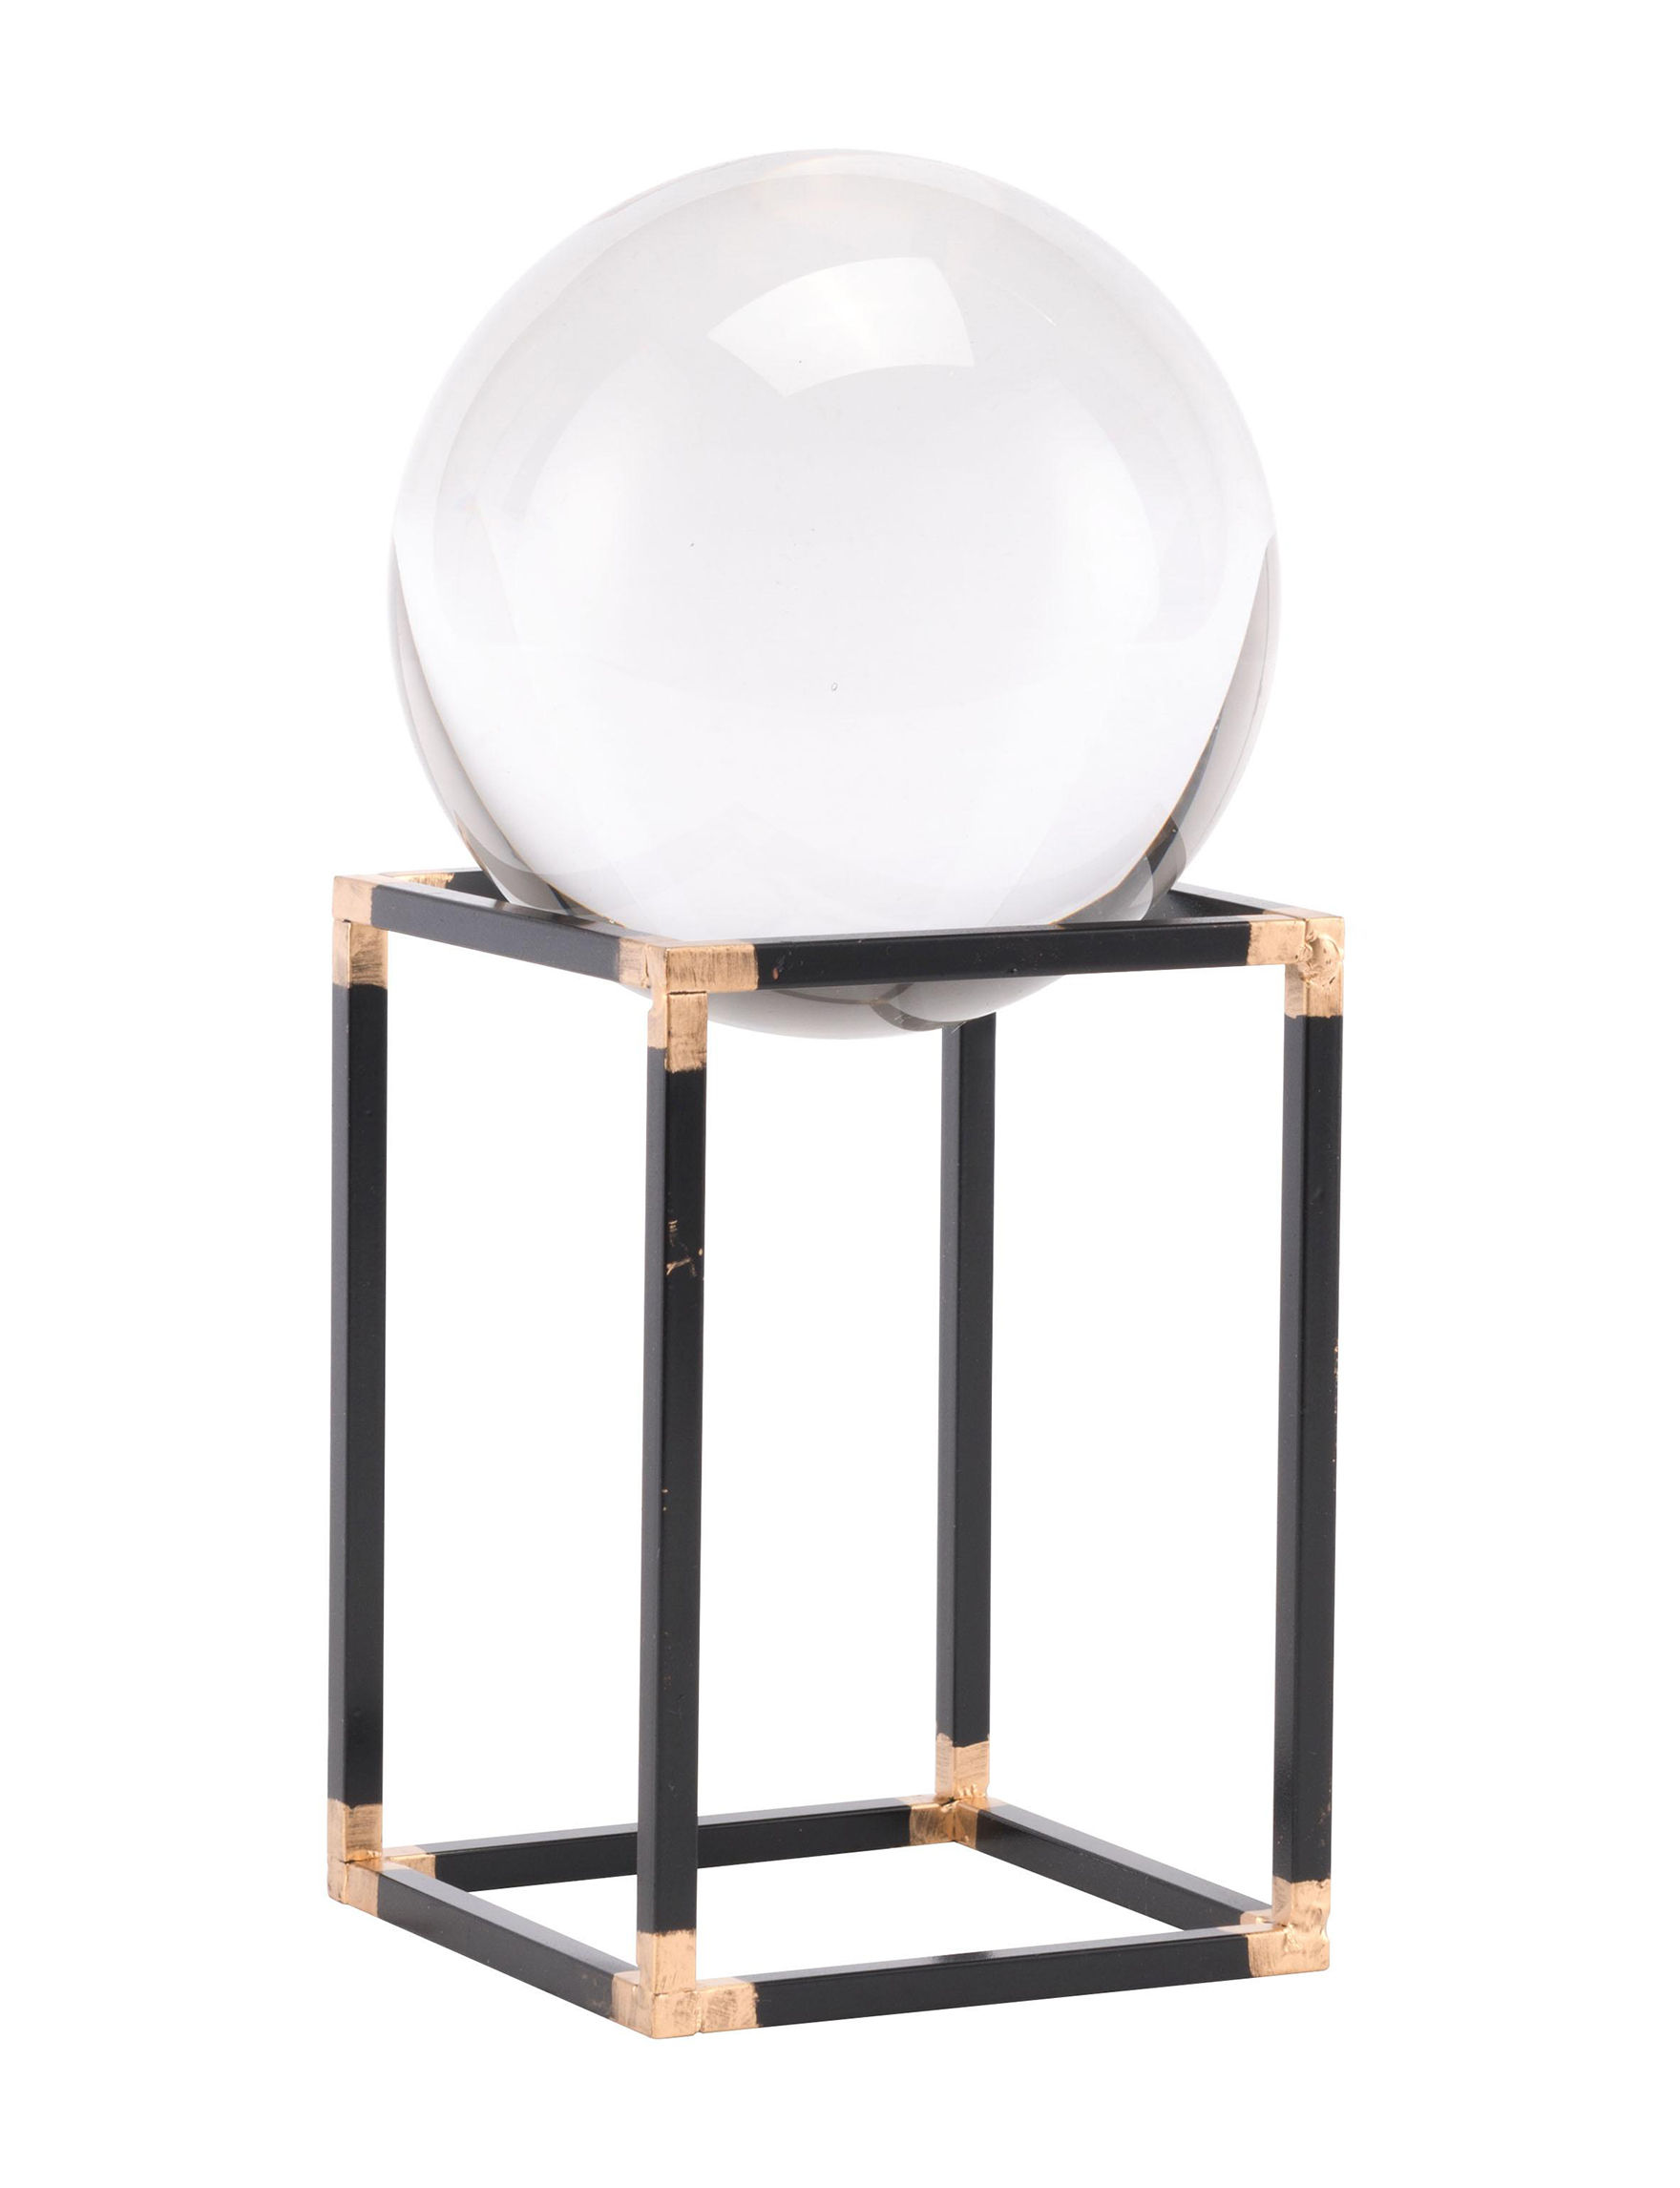 Zuo Modern Black Decorative Objects Home Accents